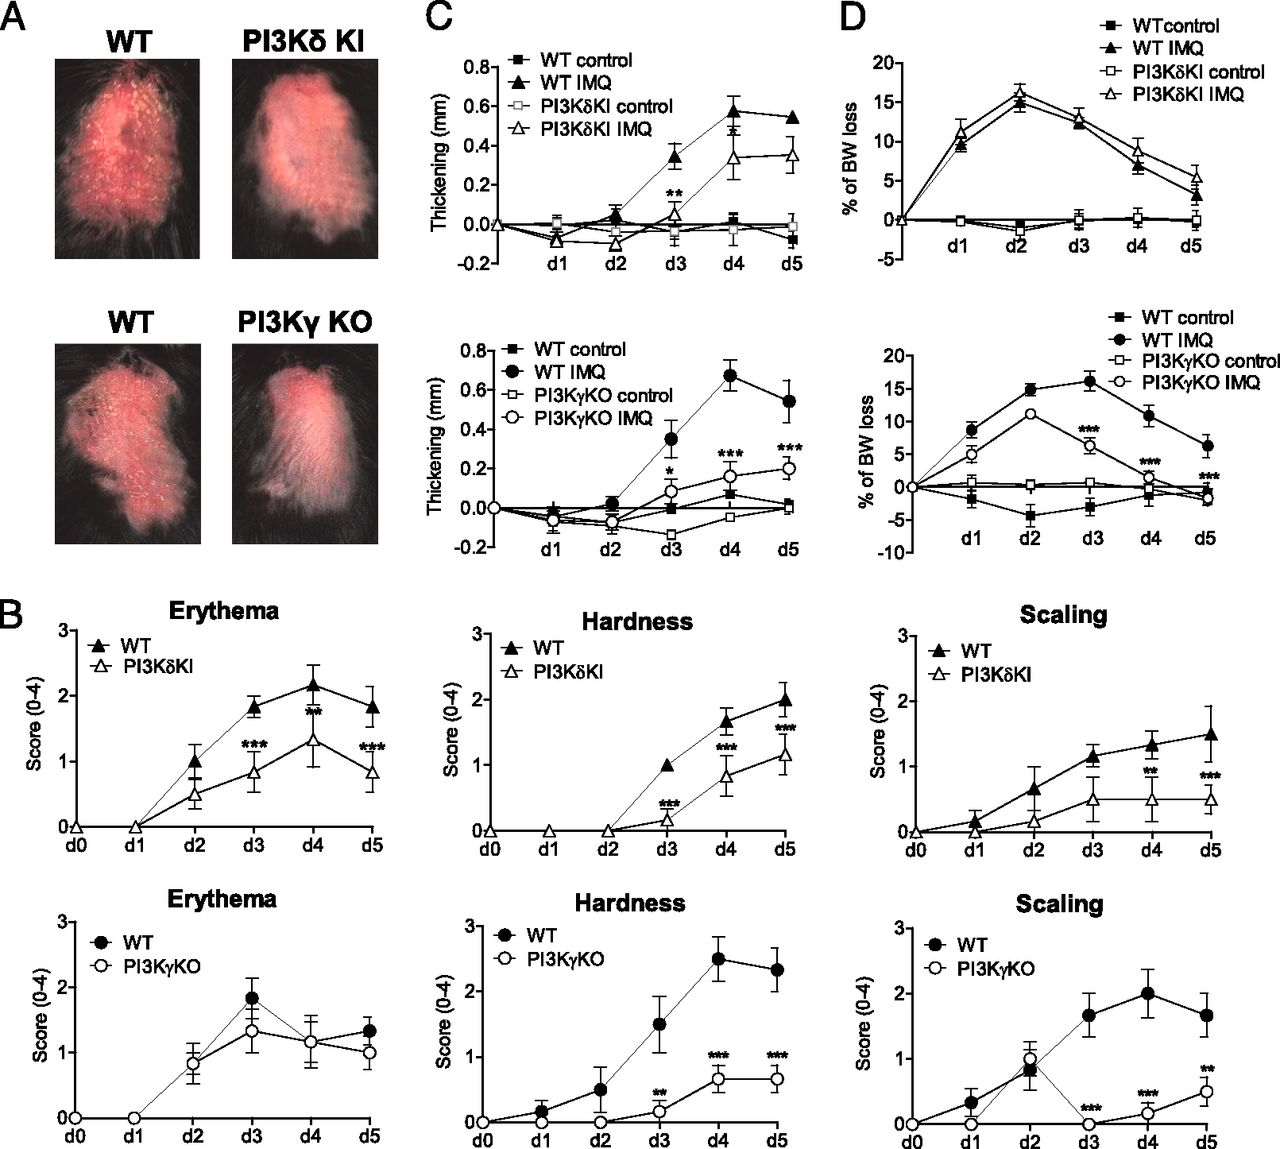 Blockade of Phosphatidylinositol 3-Kinase (PI3K)δ or PI3Kγ Reduces